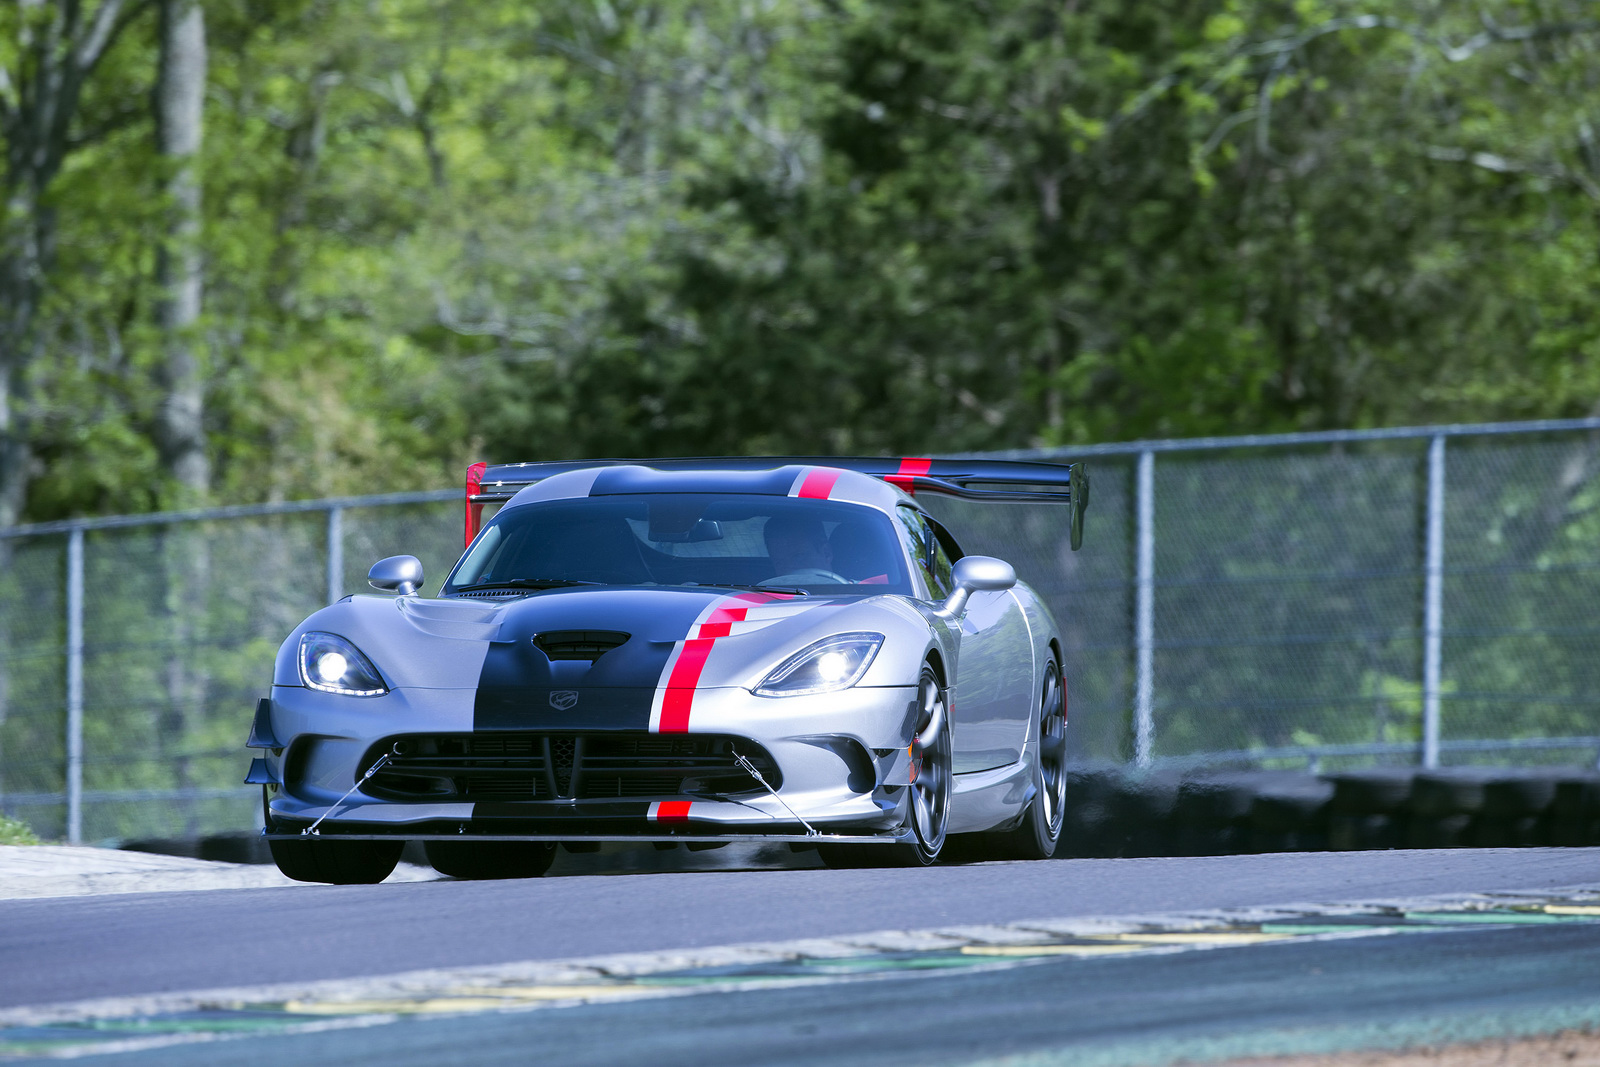 dodge confirms viper factory will close august 31